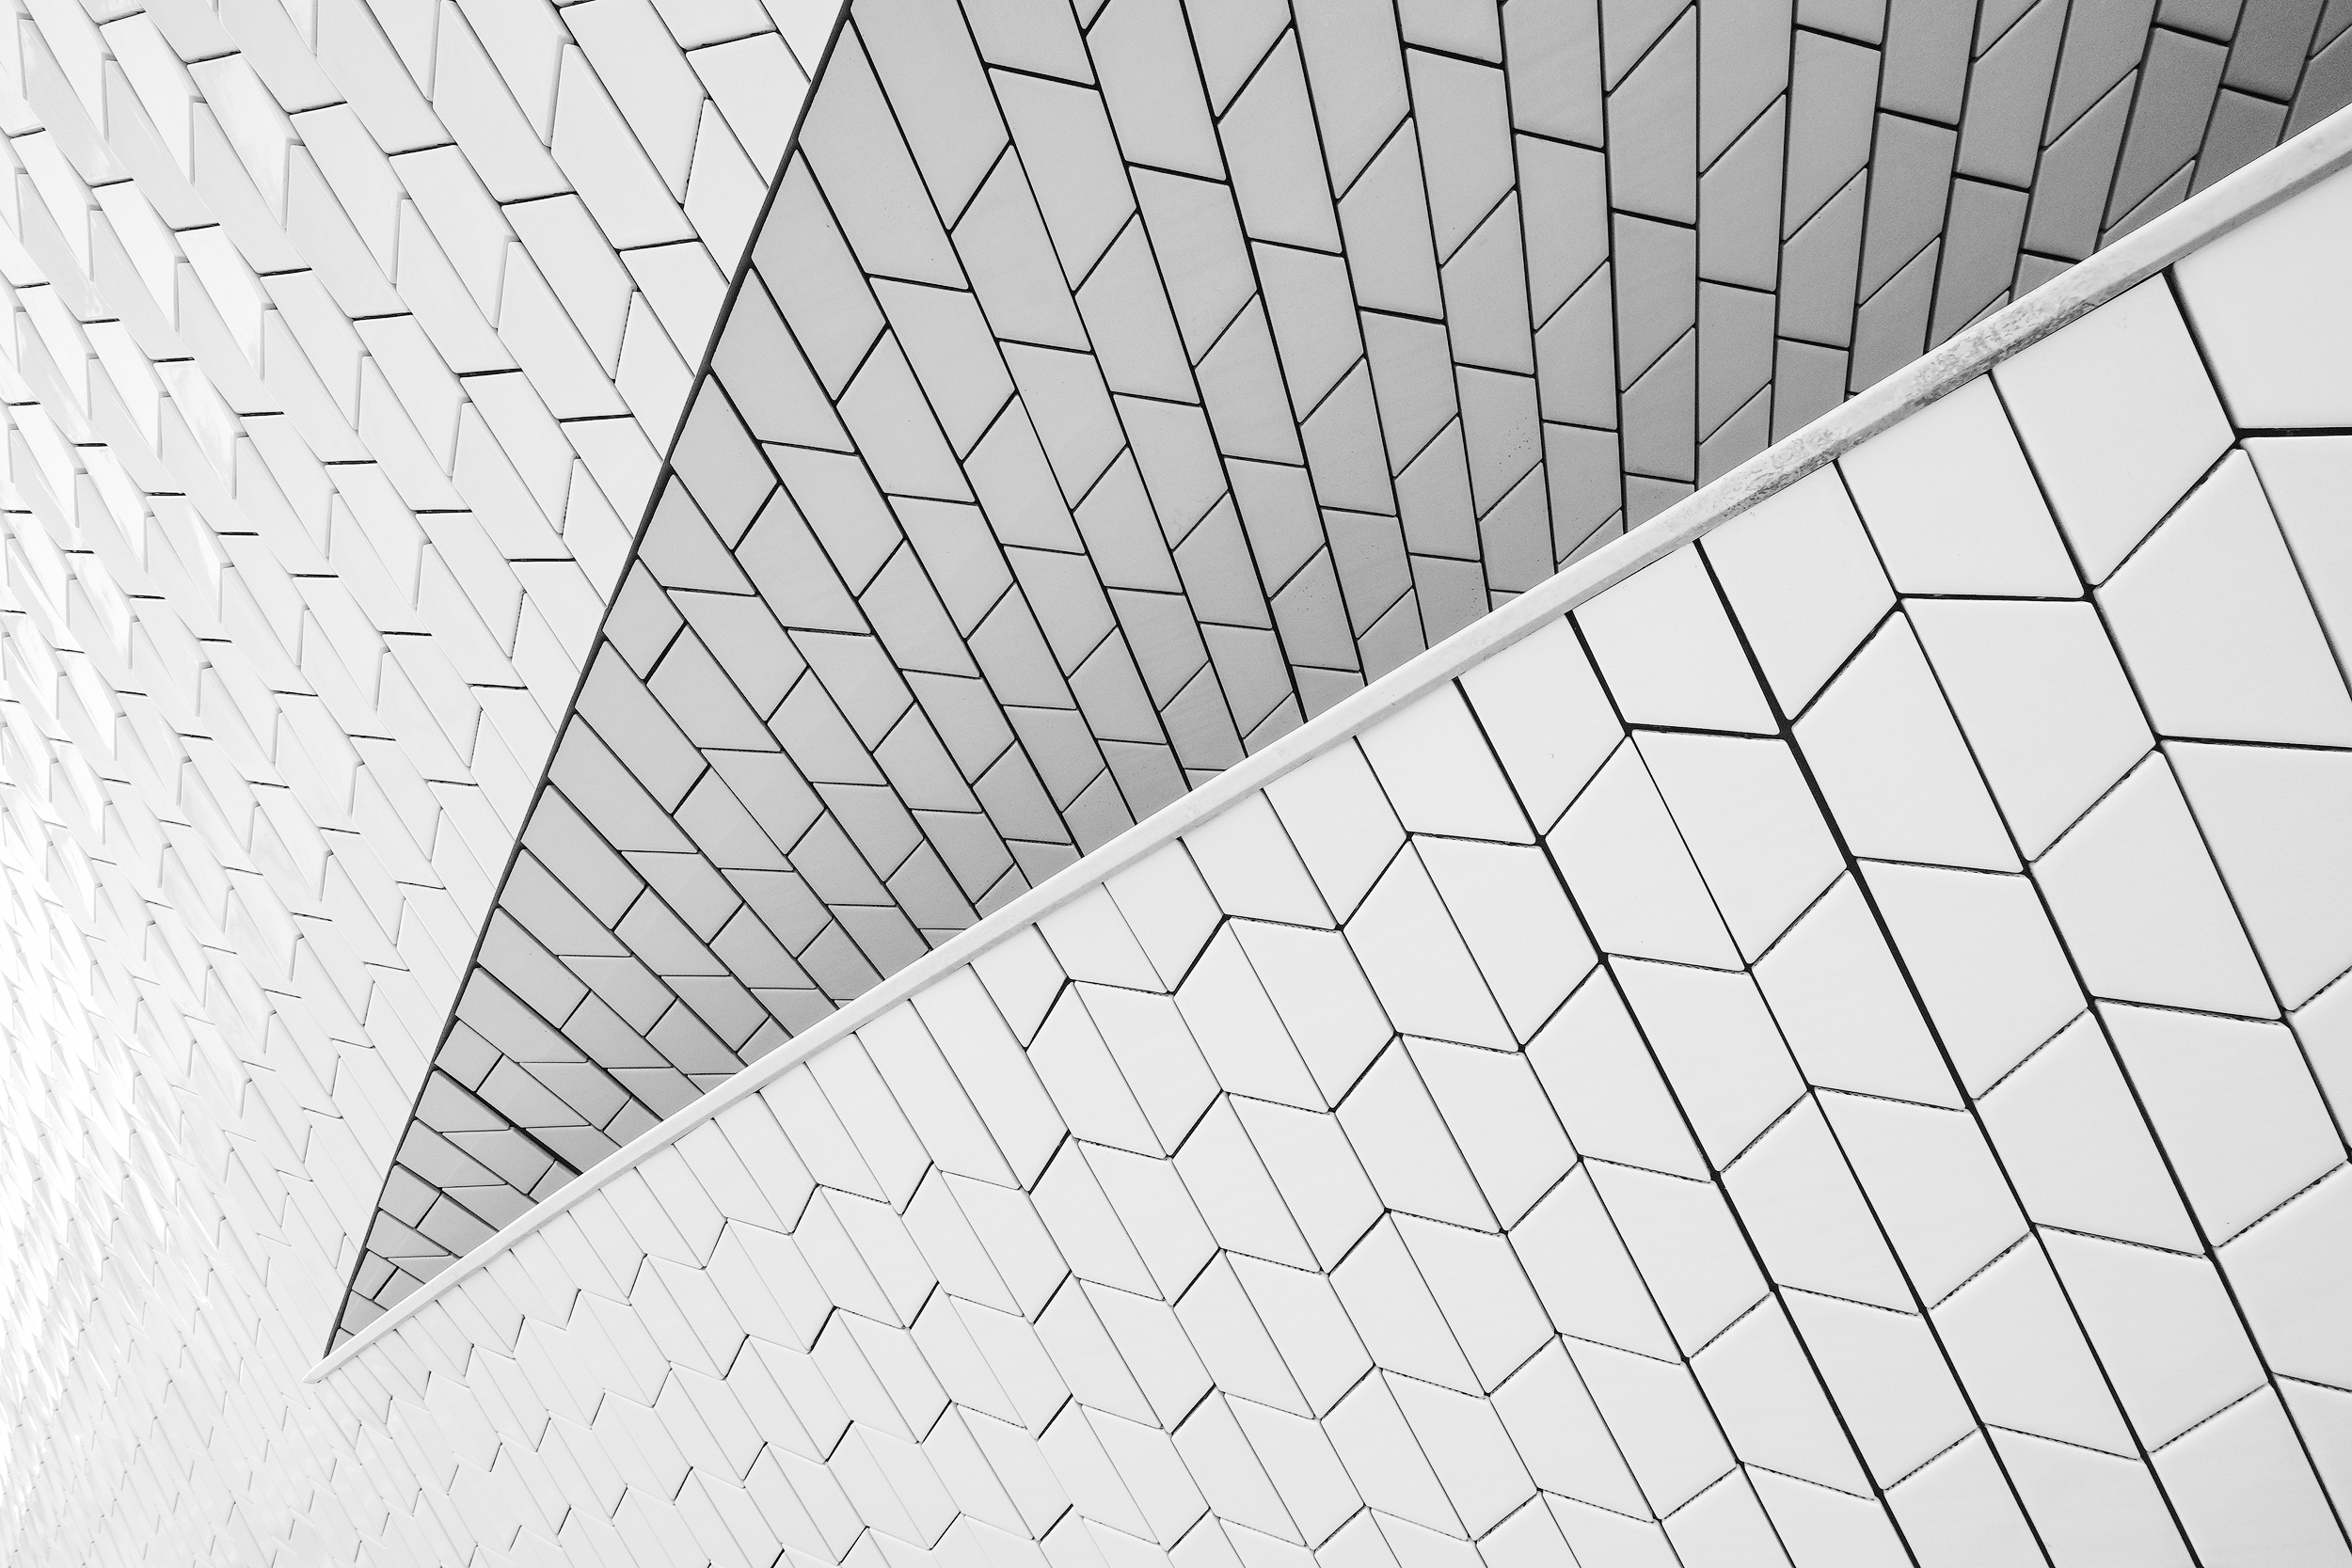 MAAT   An abstract architectural study of the beautiful forms of the new Museum of Art, Architecture and Technology (MAAT) in Lisbon